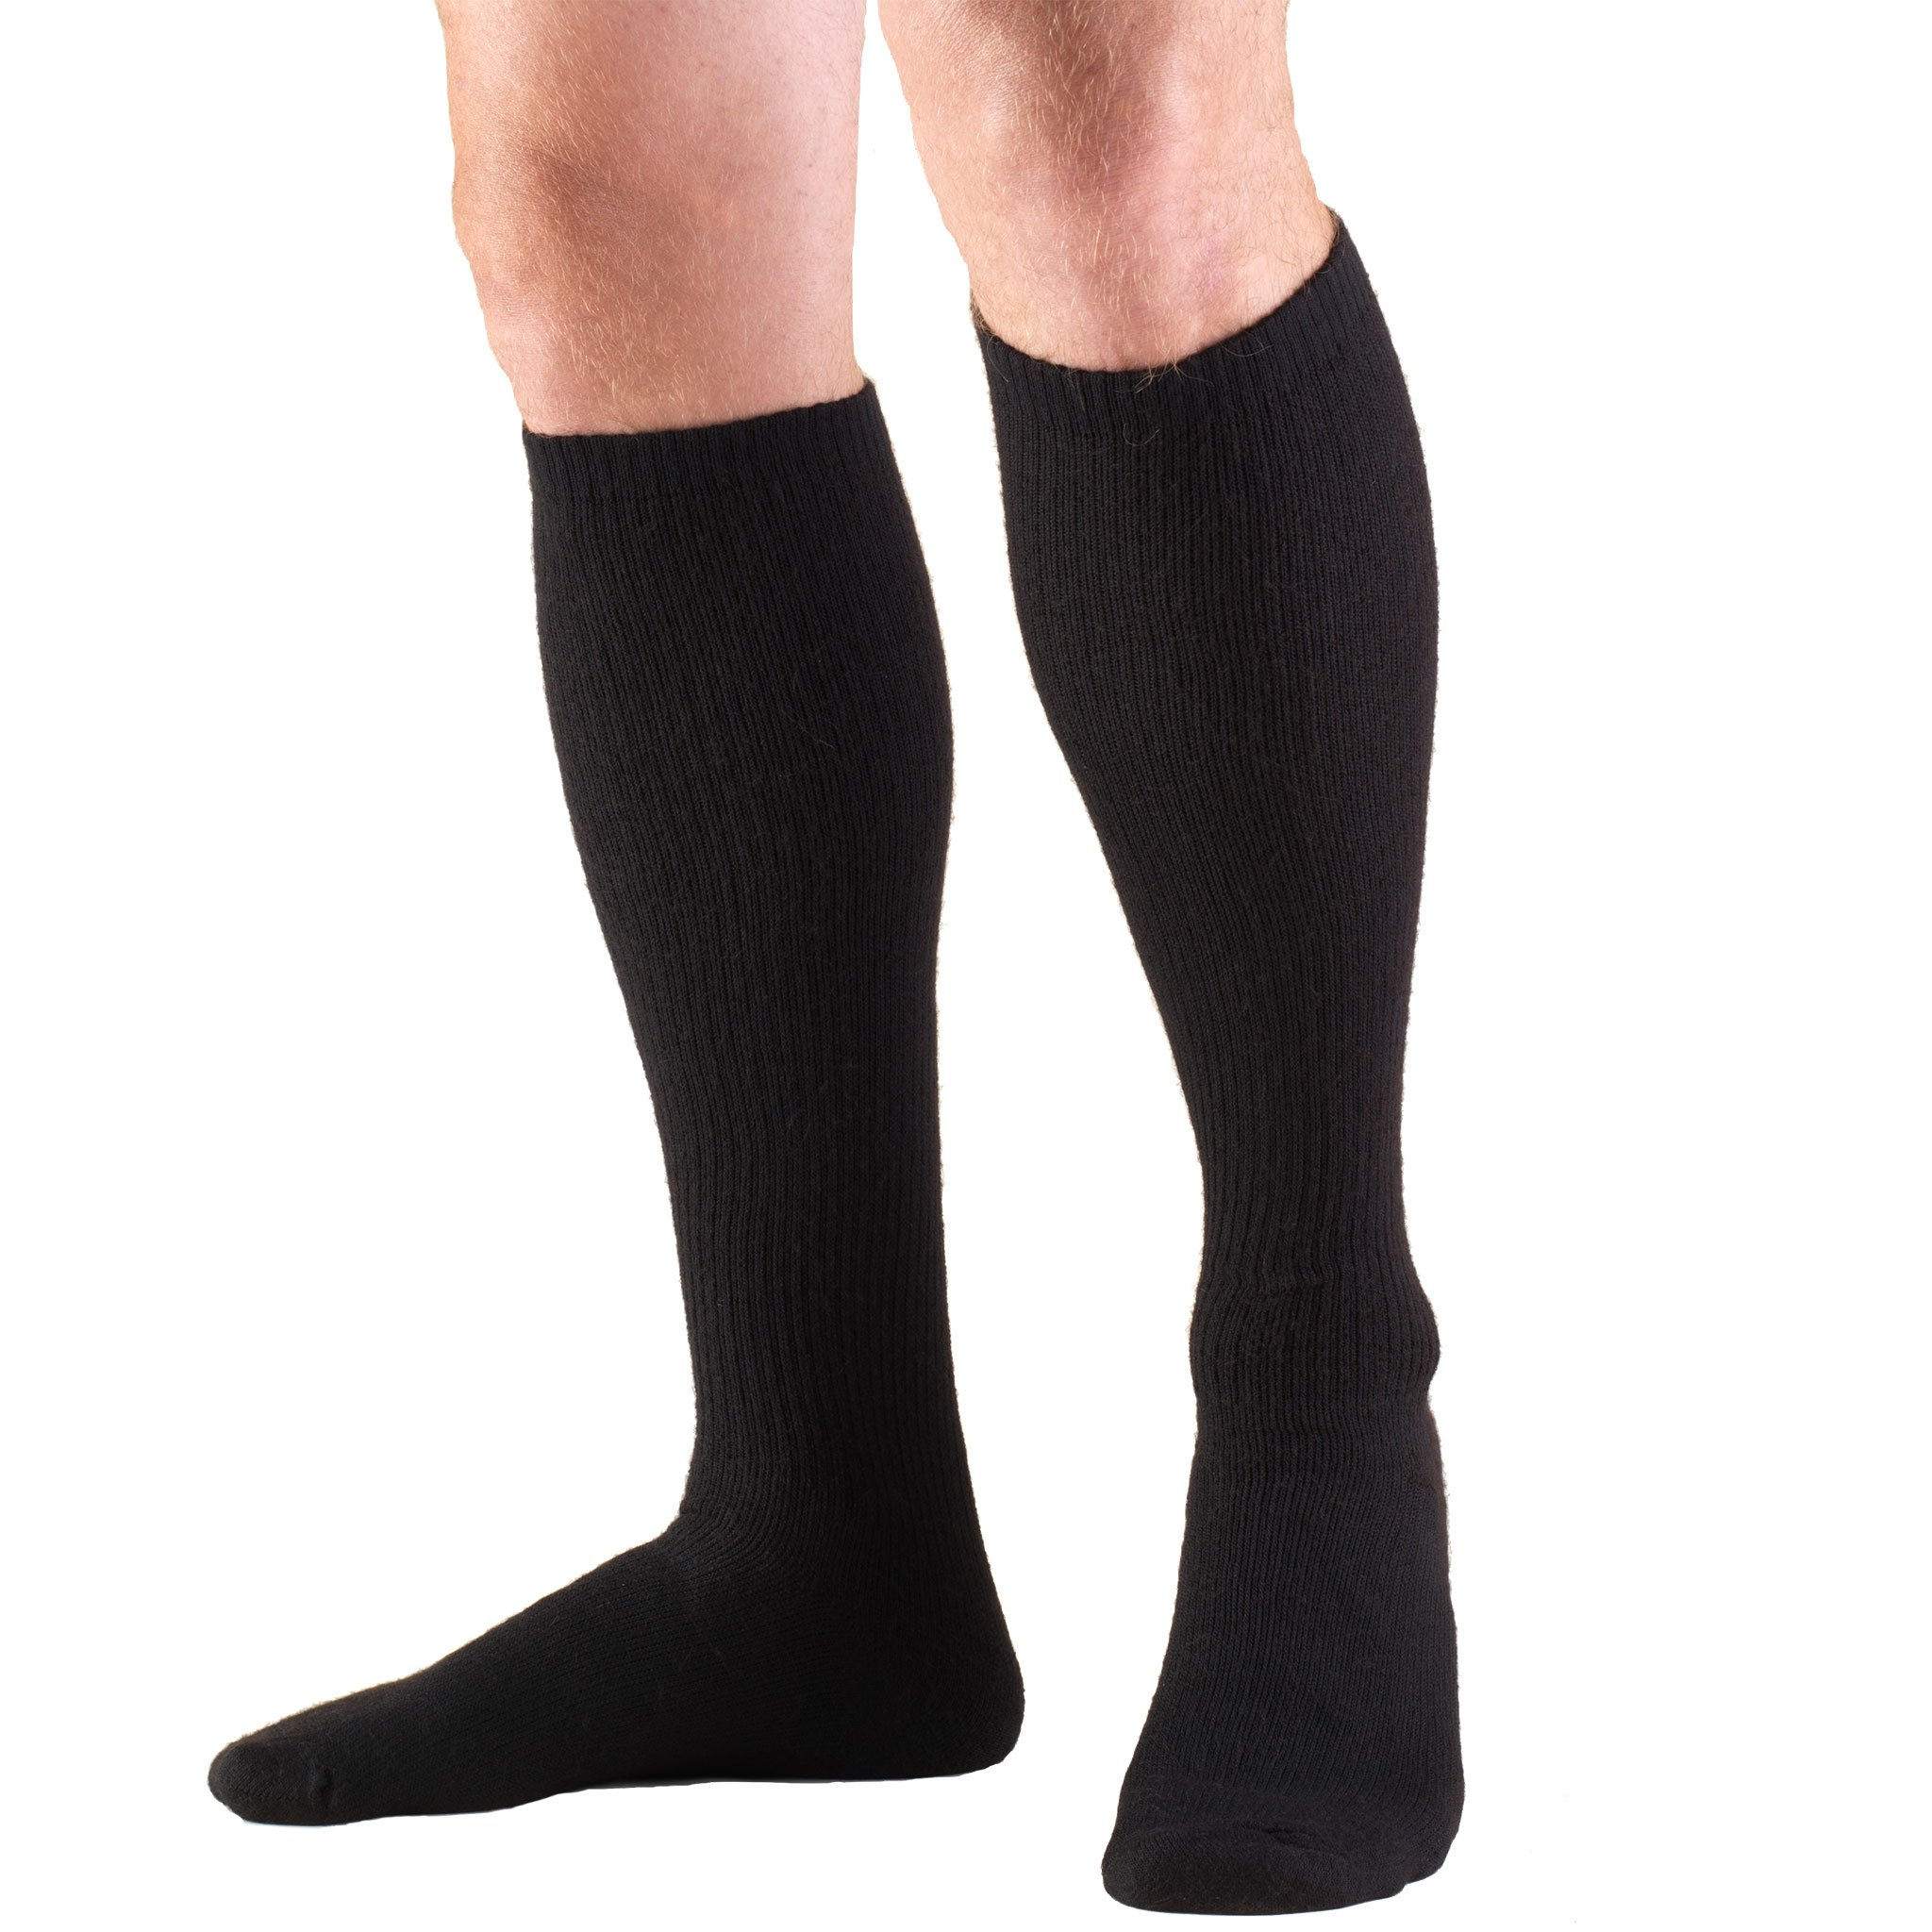 Truform Compression Socks 20-30 mmHg Knee High, Black, X-Large